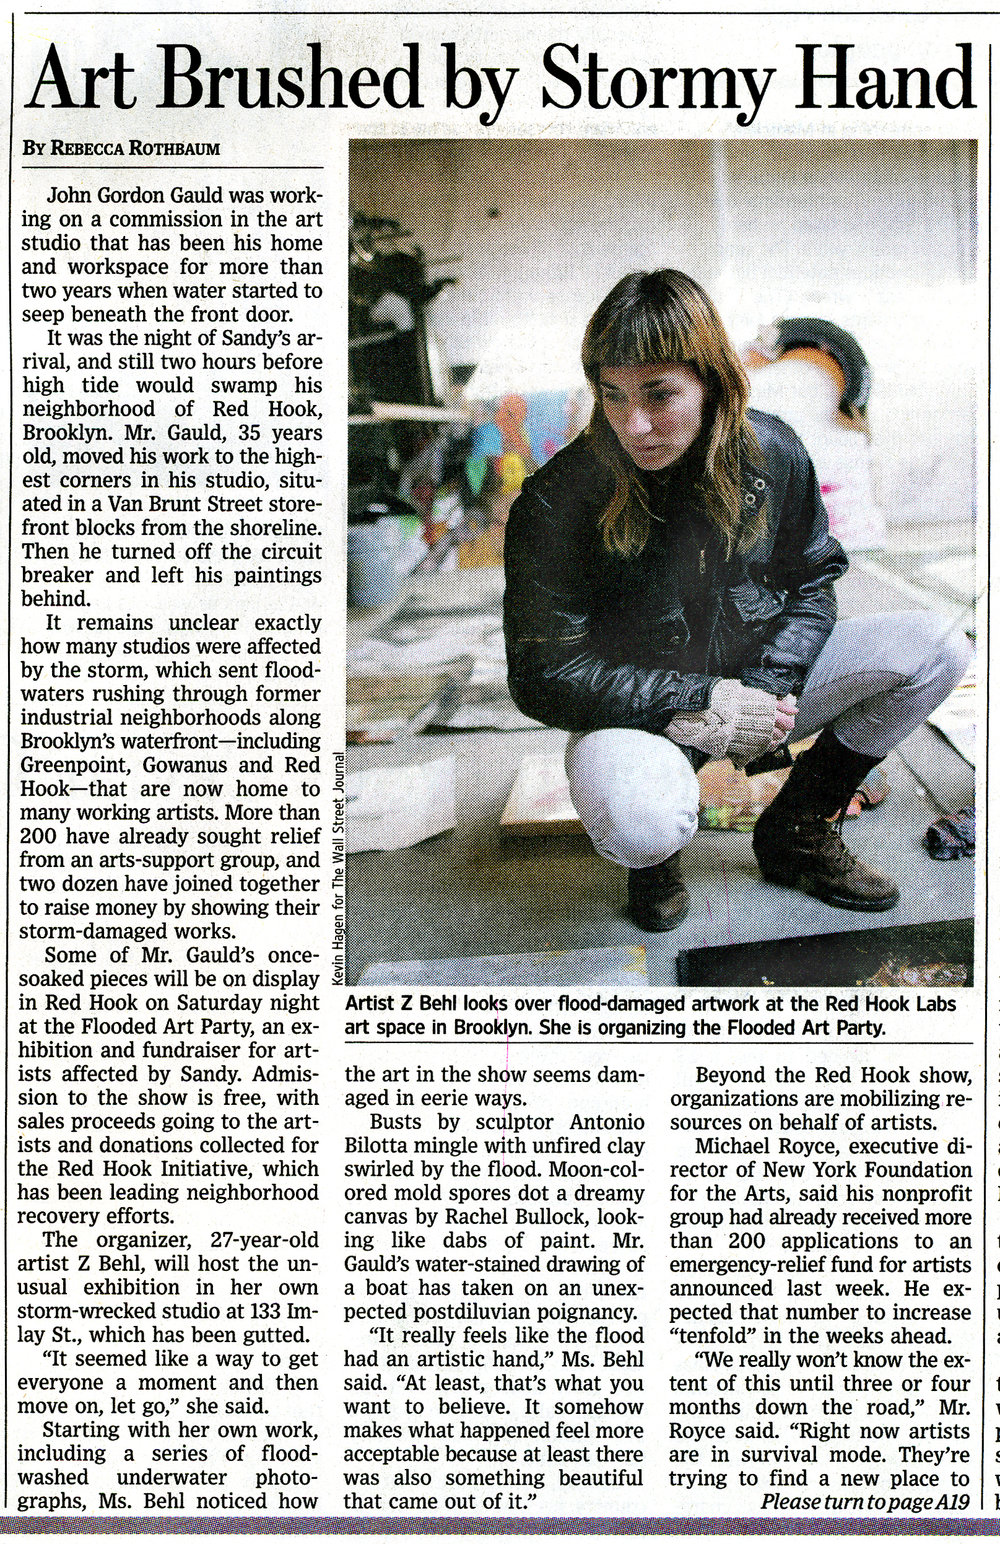 Wall St Journal article about the Flooded Art Show curated by Z Behl.